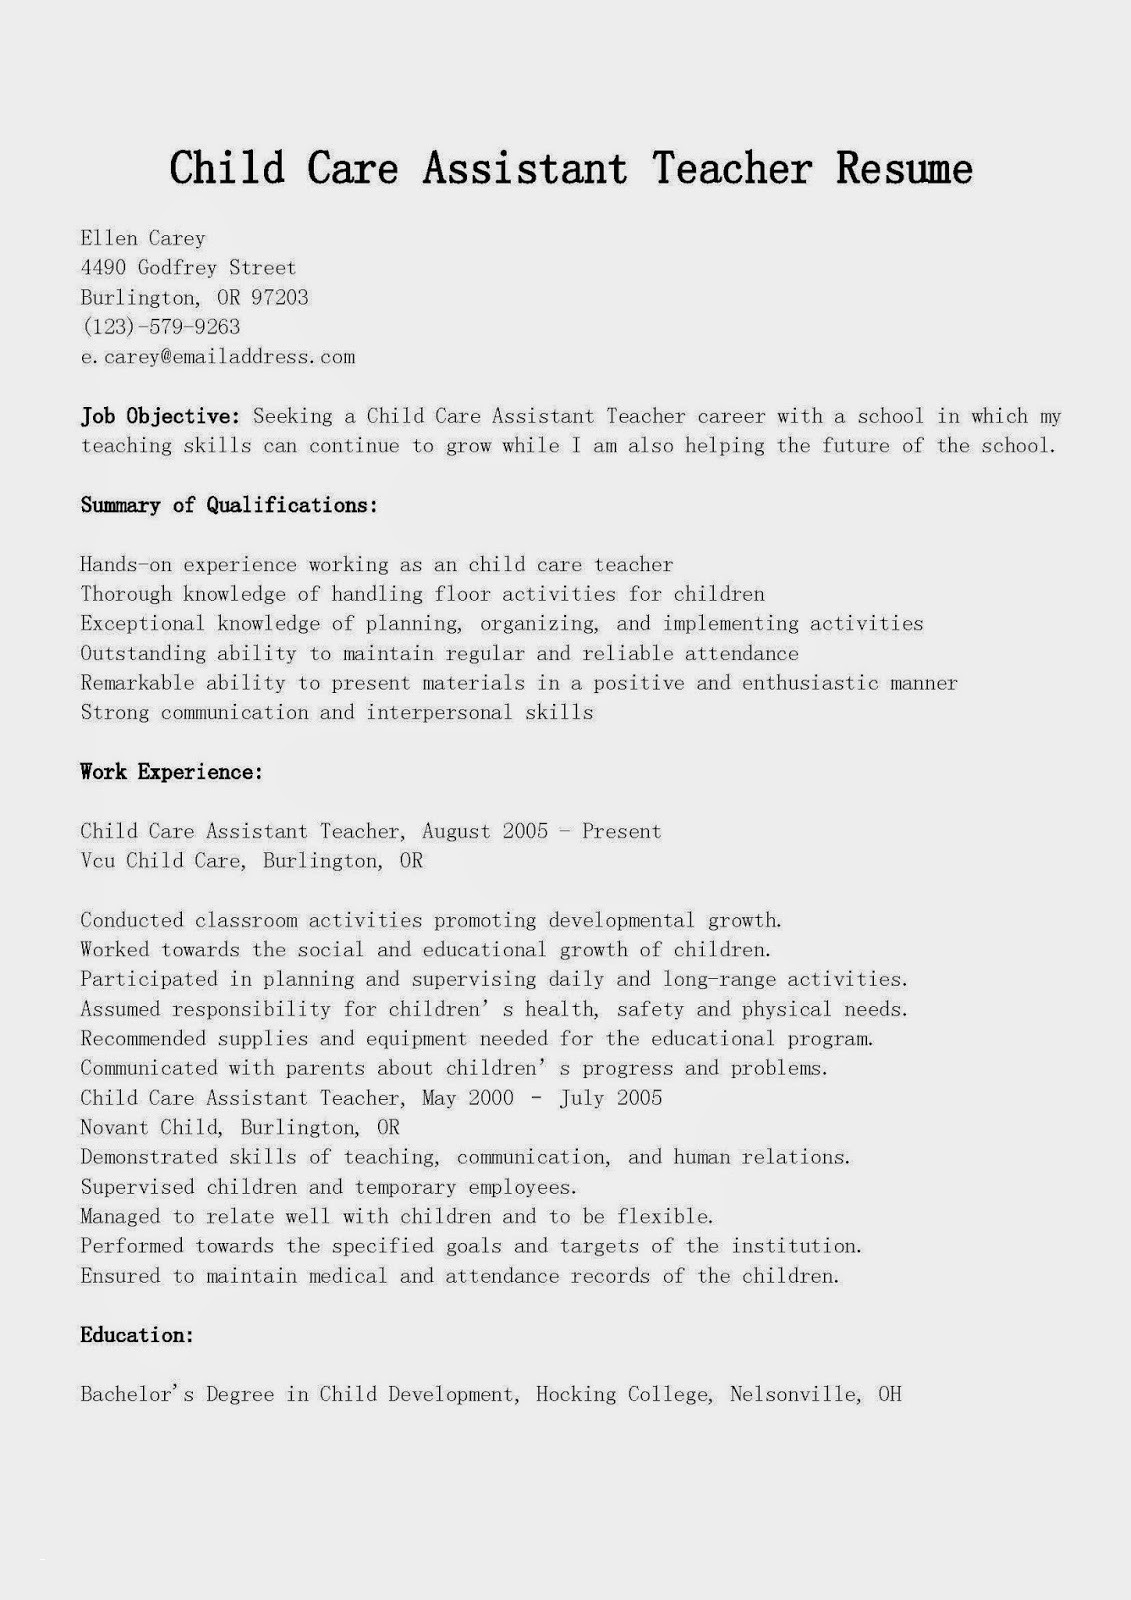 Child Care Resume Examples - Child Care Resume Examples Unique Child Care Resume Sample Unique